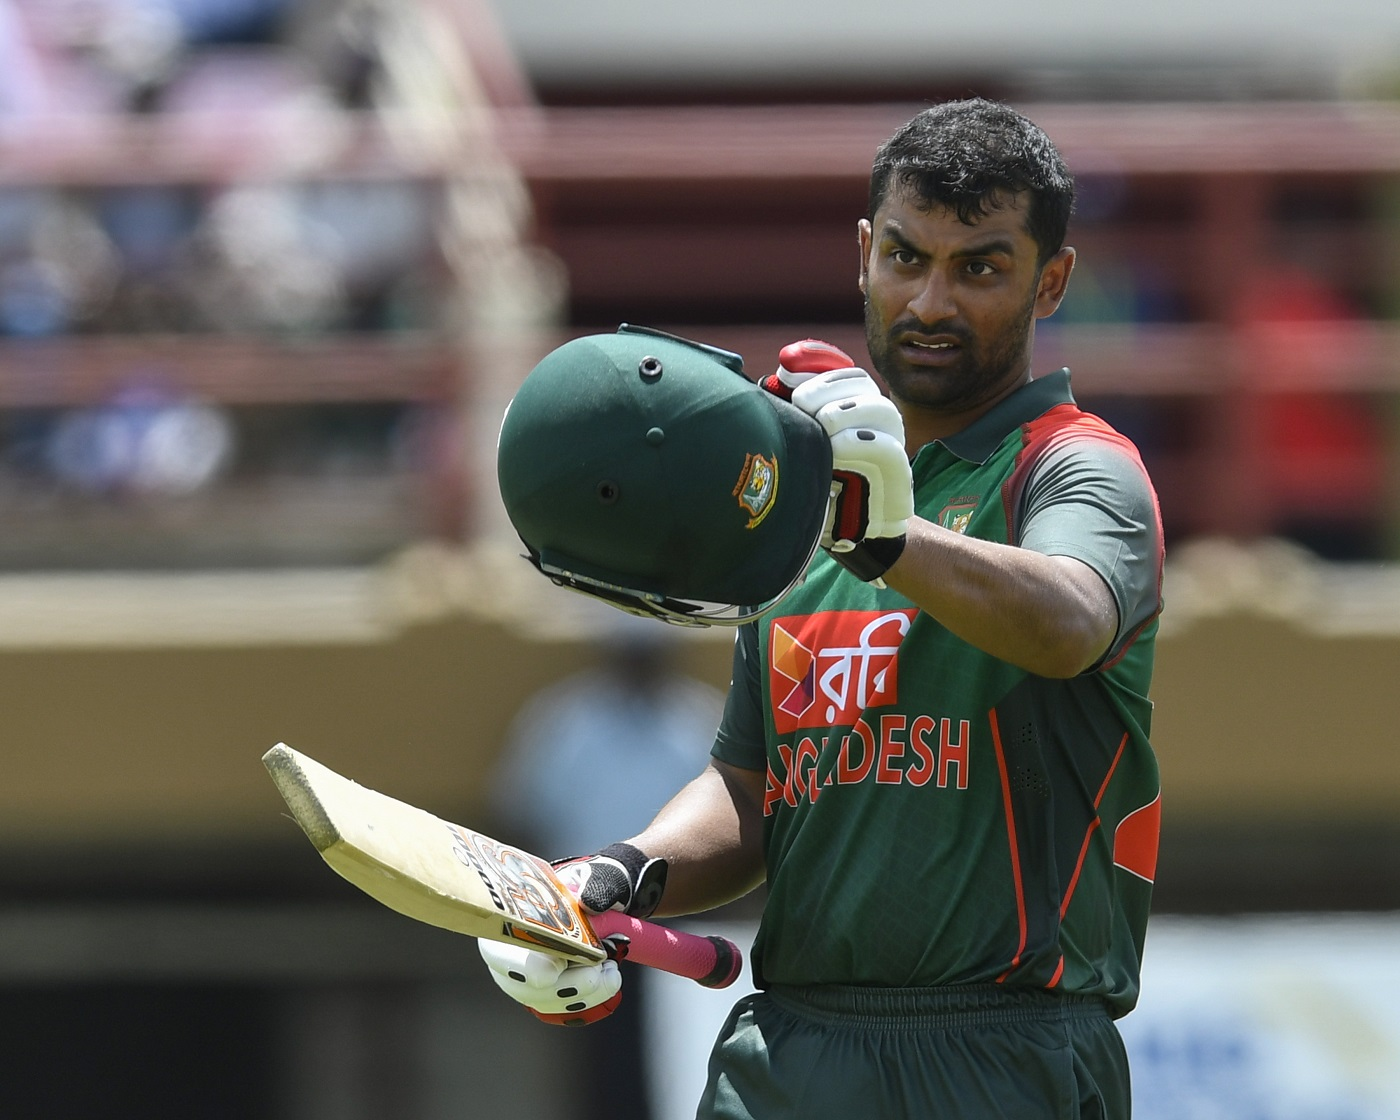 Tamim Iqbal of Bangladesh celebrates his century